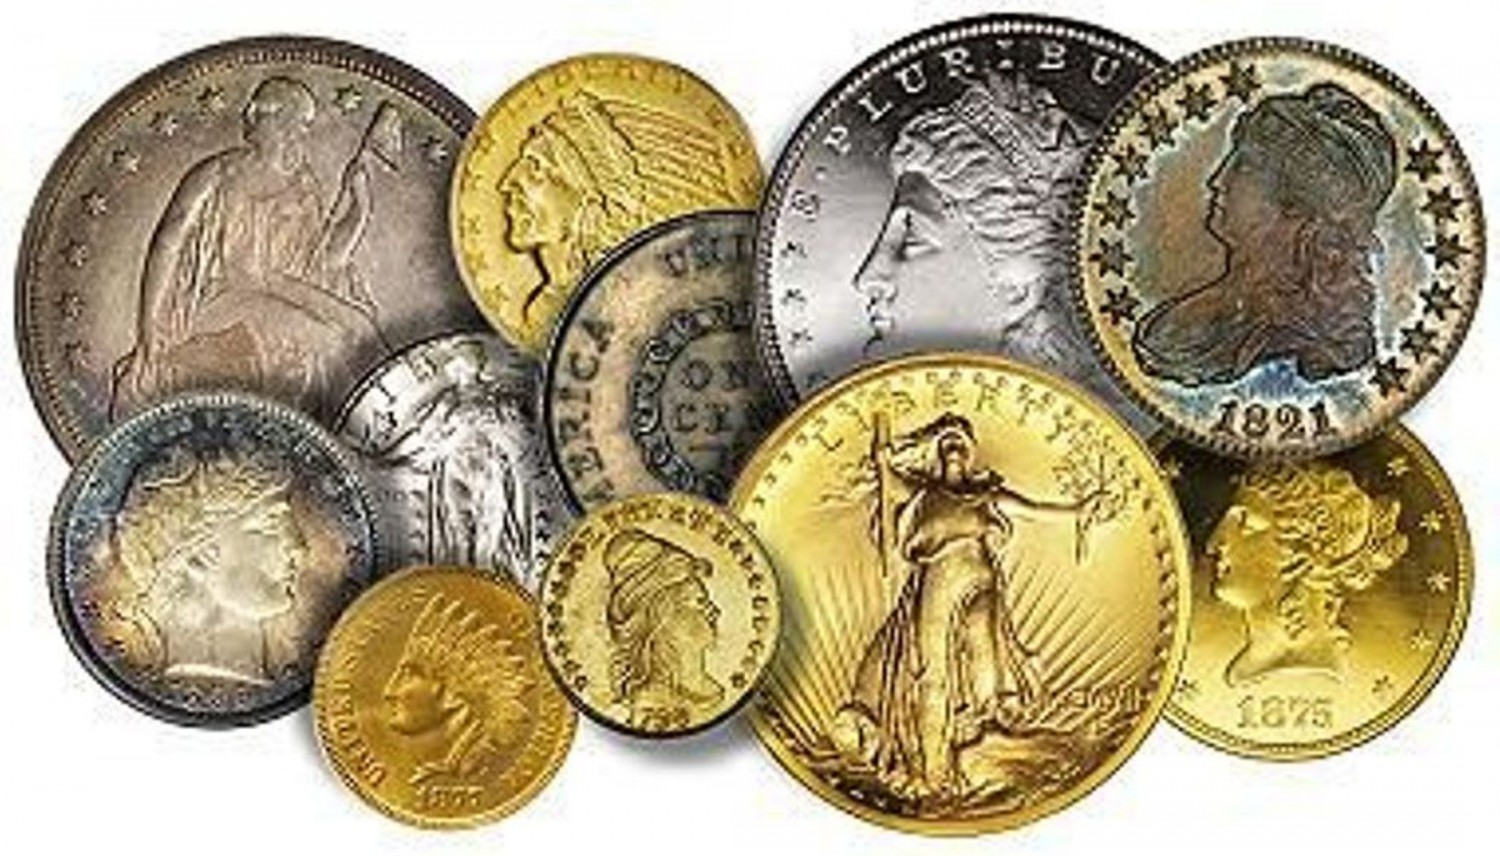 essay on if i were a coin Browse and read if i were a coin essay if i were a coin essay let's read we will often find out this sentence everywhere when still being a kid, mom used to order.